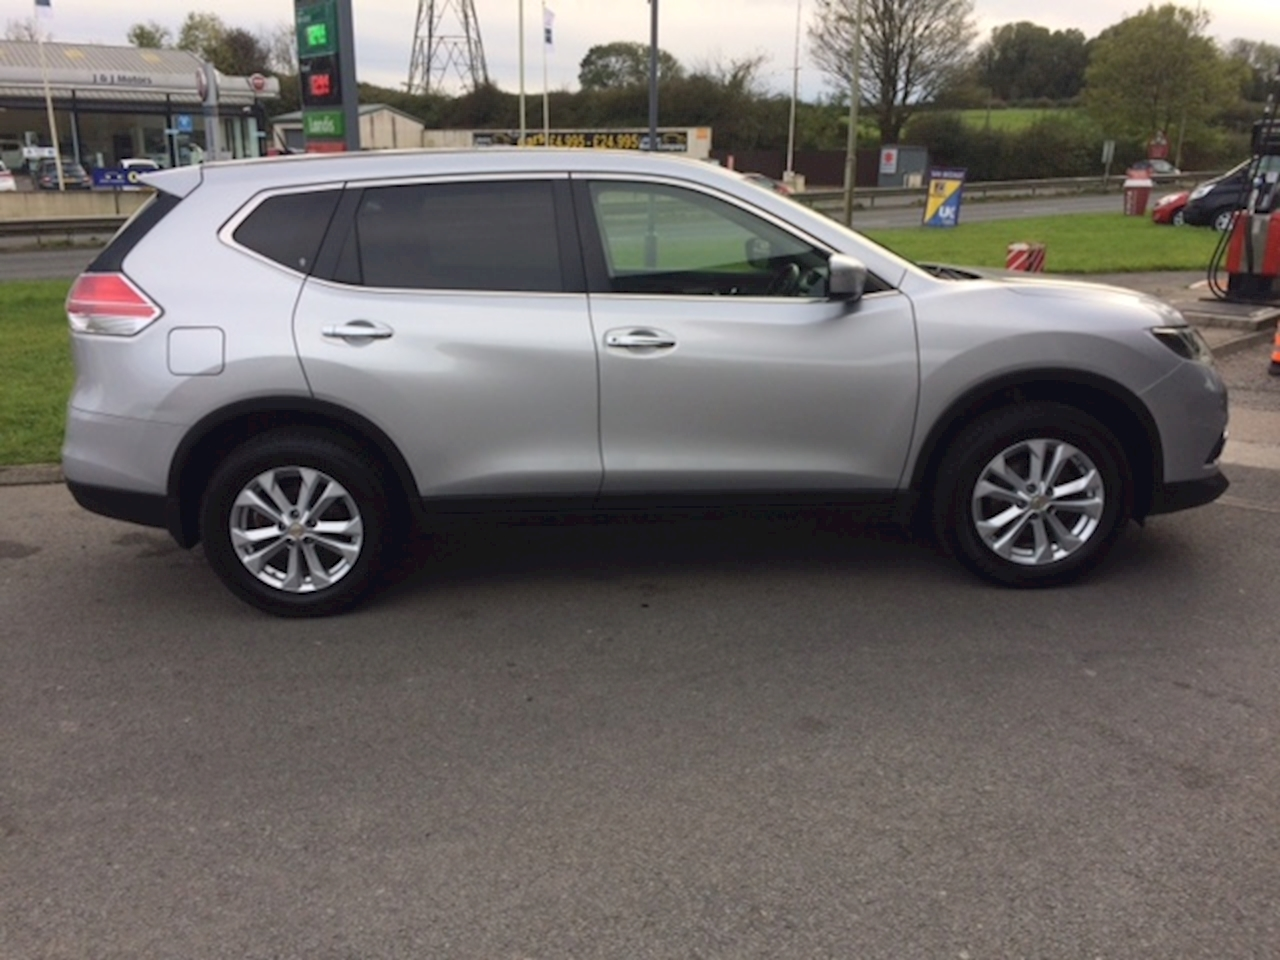 X-Trail Dci Acenta Estate 1.6 Manual Diesel